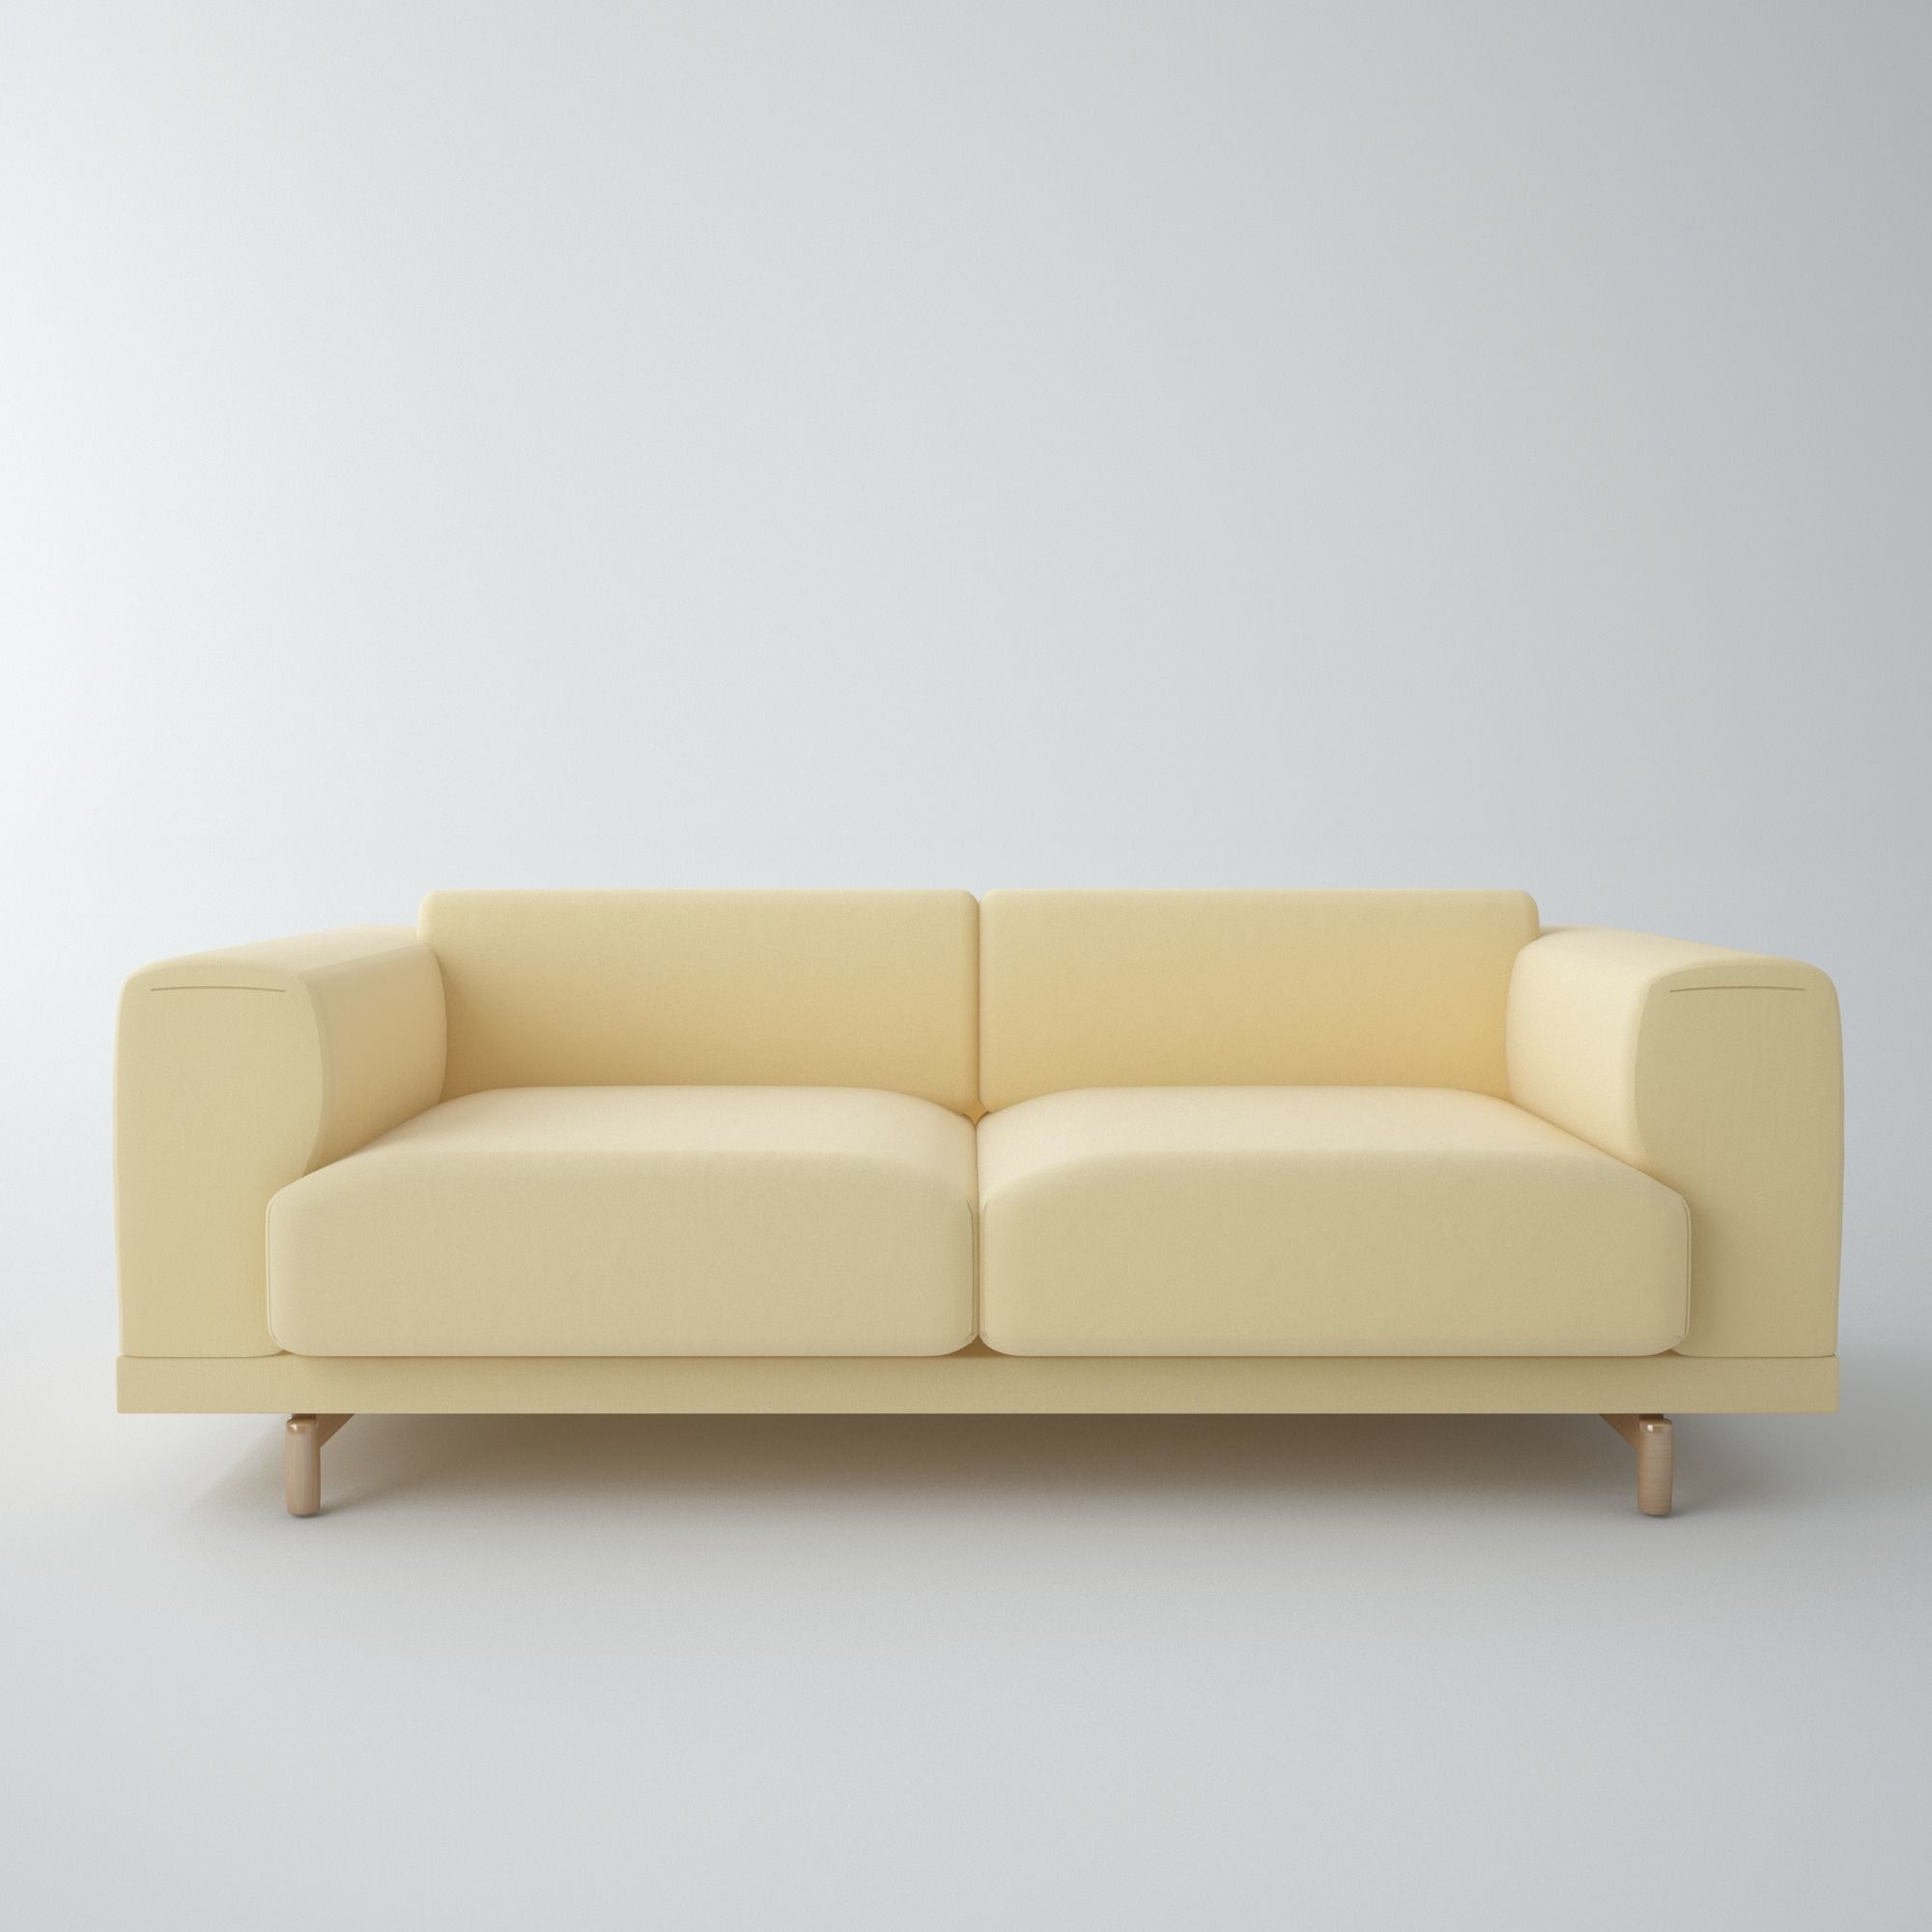 muuto rest sofa rest studio sofa muuto connox thesofa. Black Bedroom Furniture Sets. Home Design Ideas